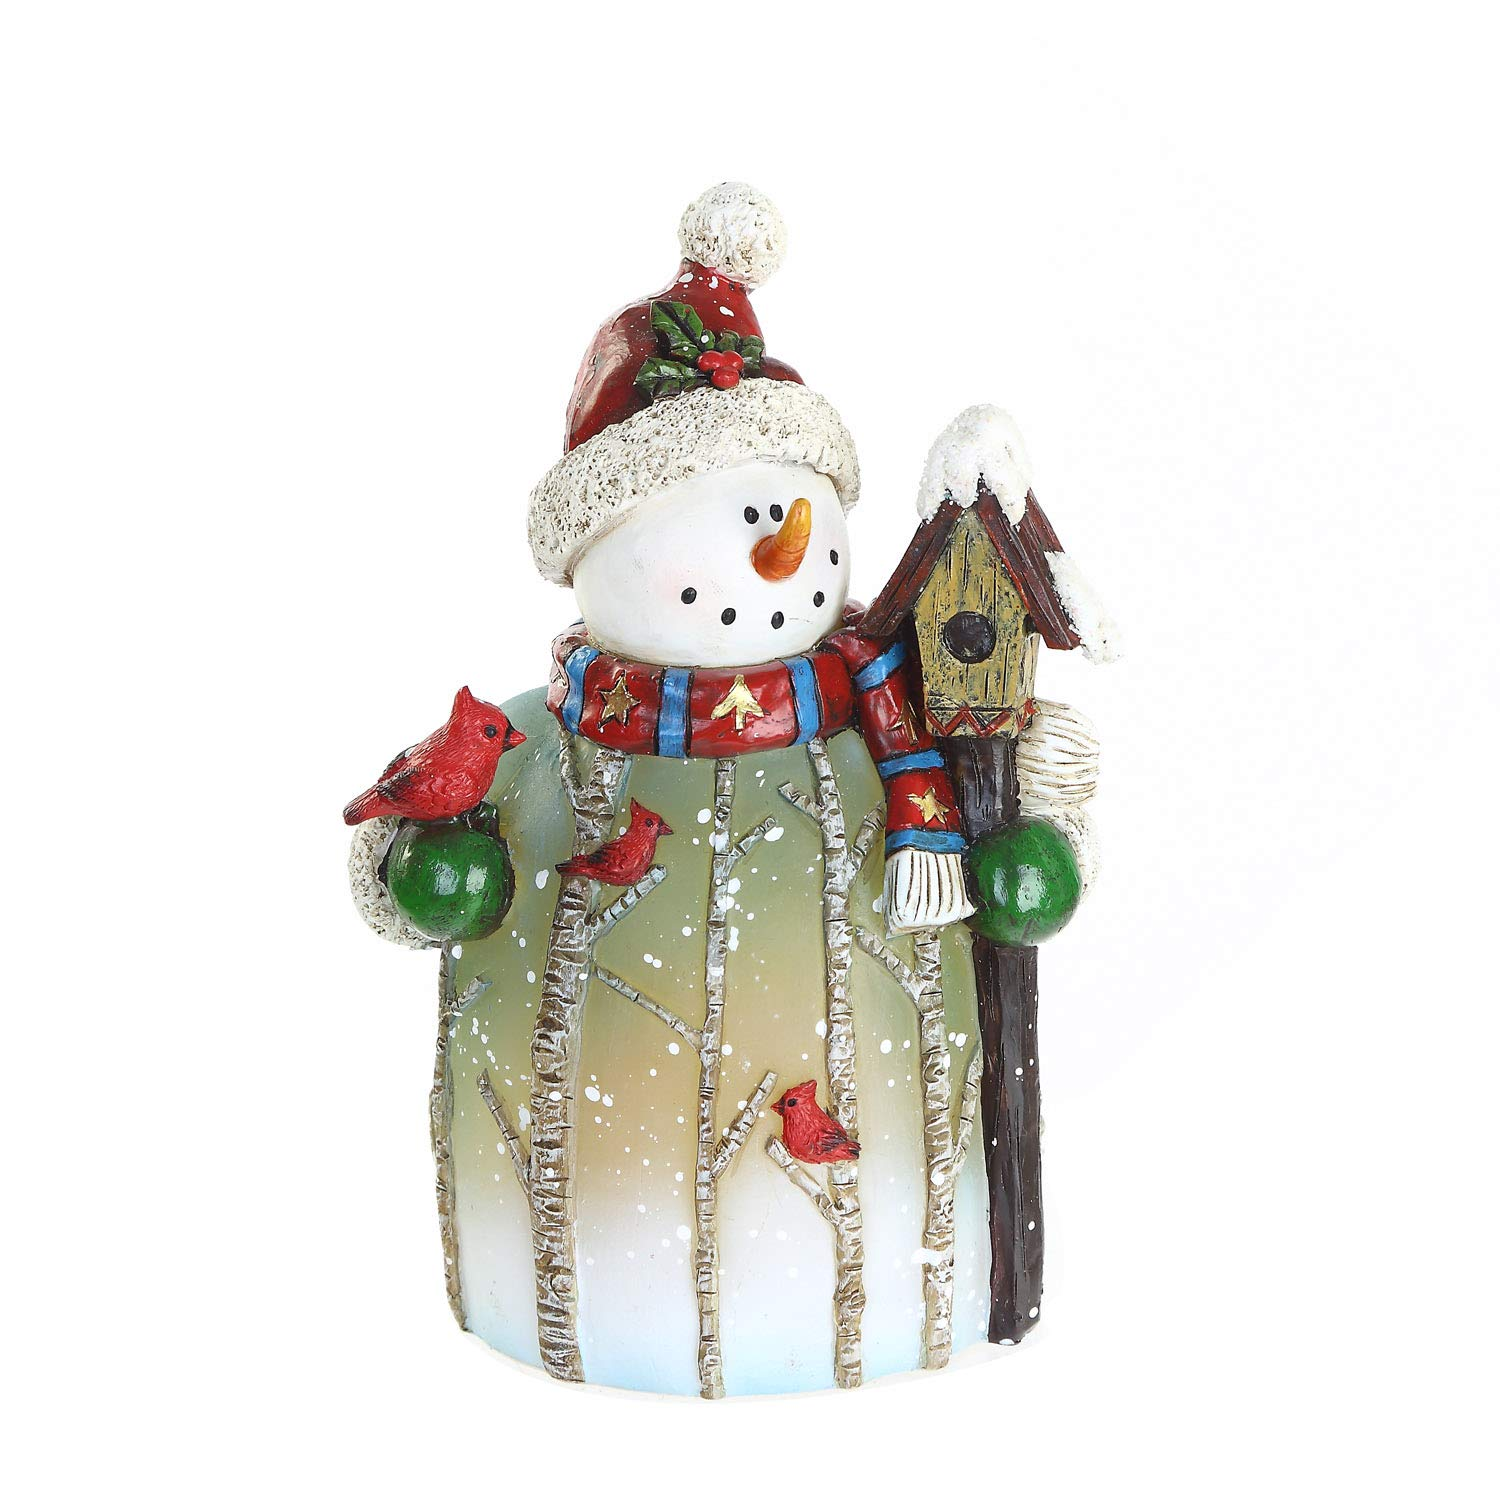 CEDAR HOME Snowman Statue with House Table Deocr Winter Scene LED Light Christmas Home Decoration Figurine Holiday Gift, 4.75''W x 3.25''D x 7''H